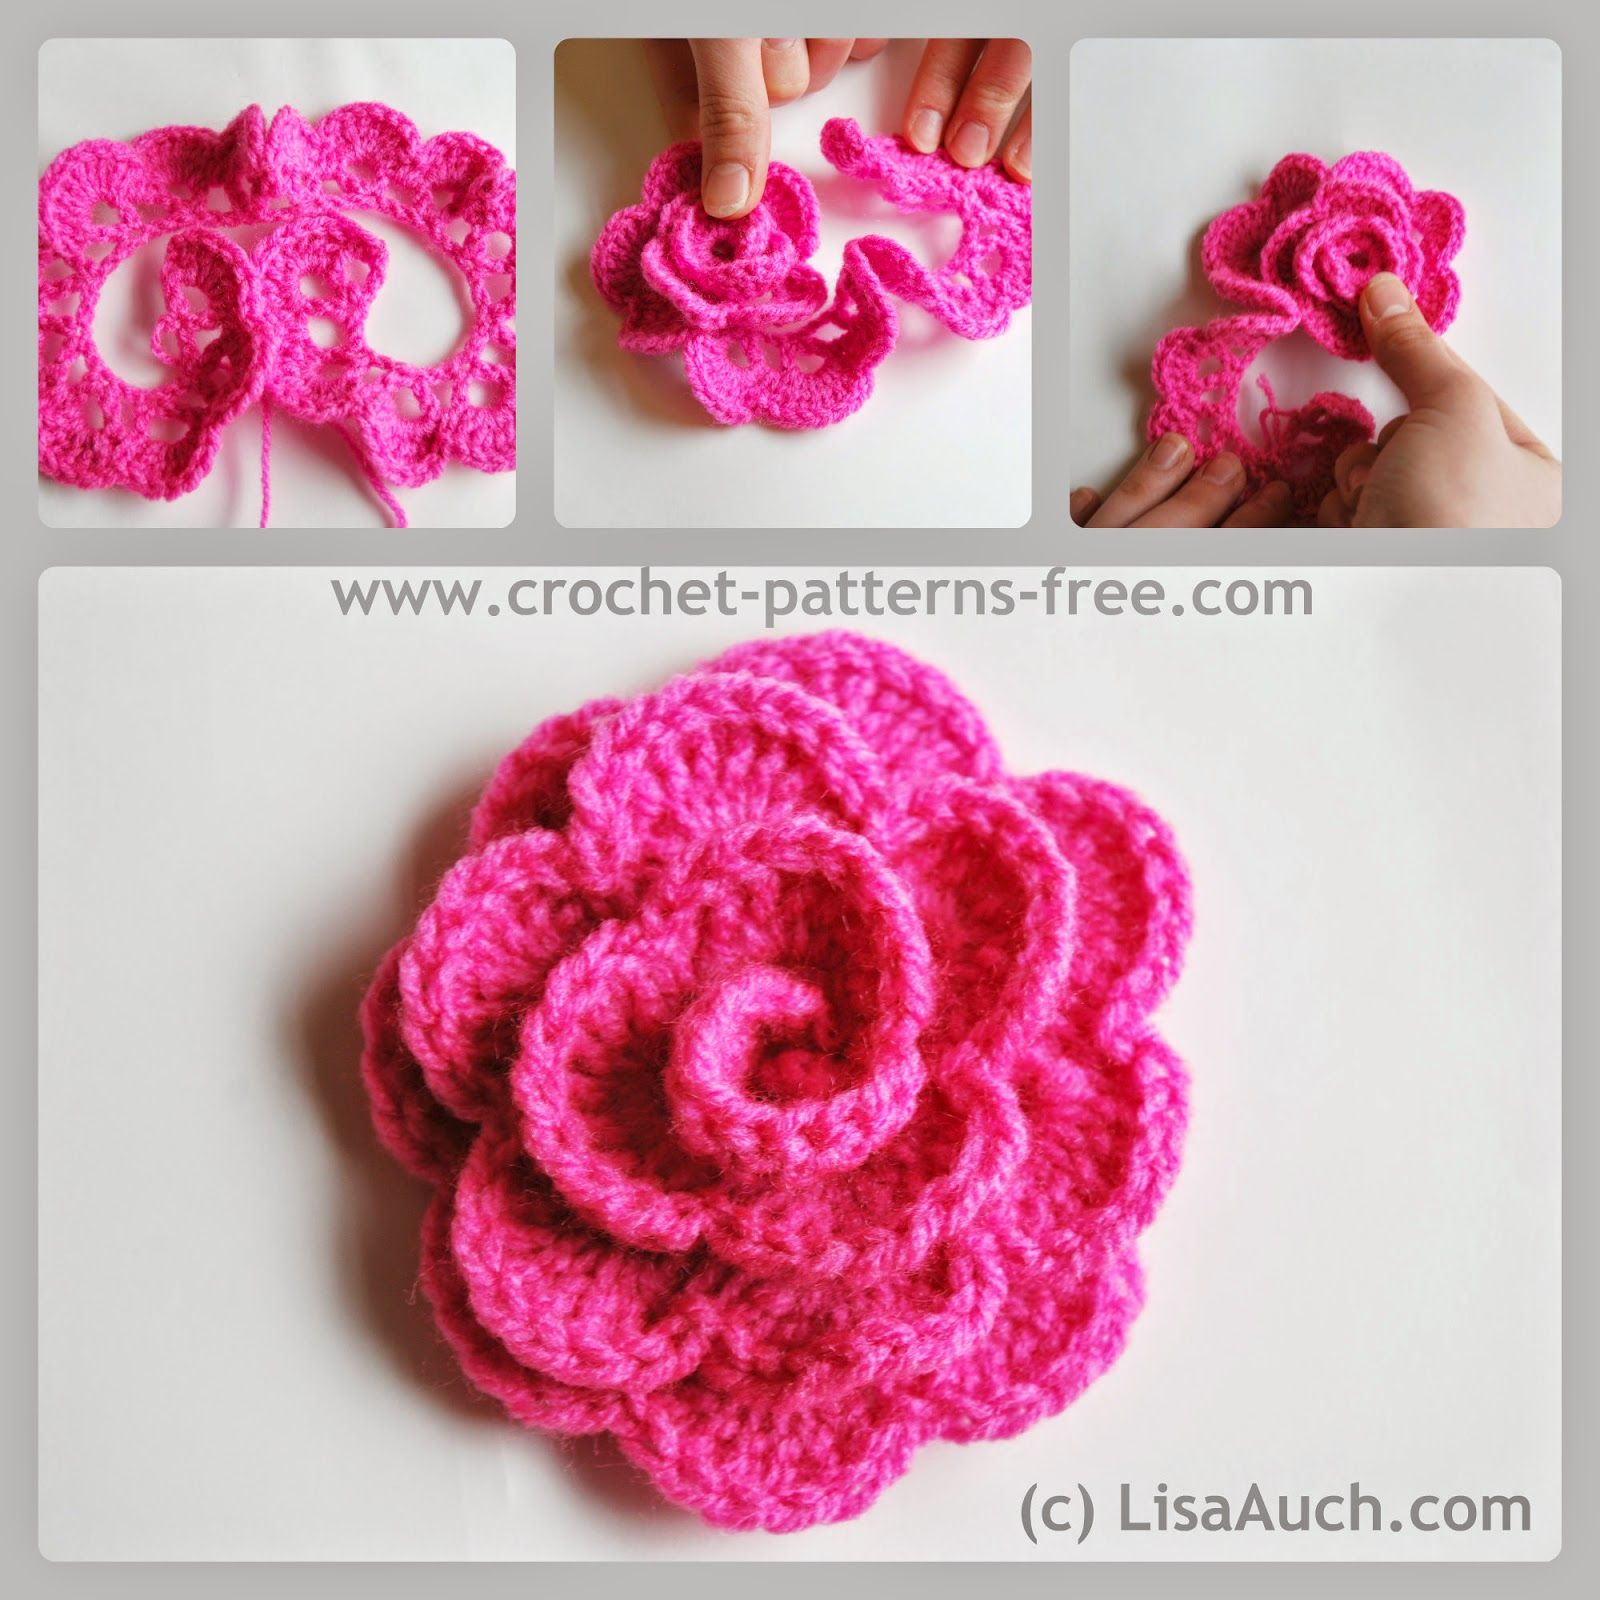 Crochet Flower Patterns